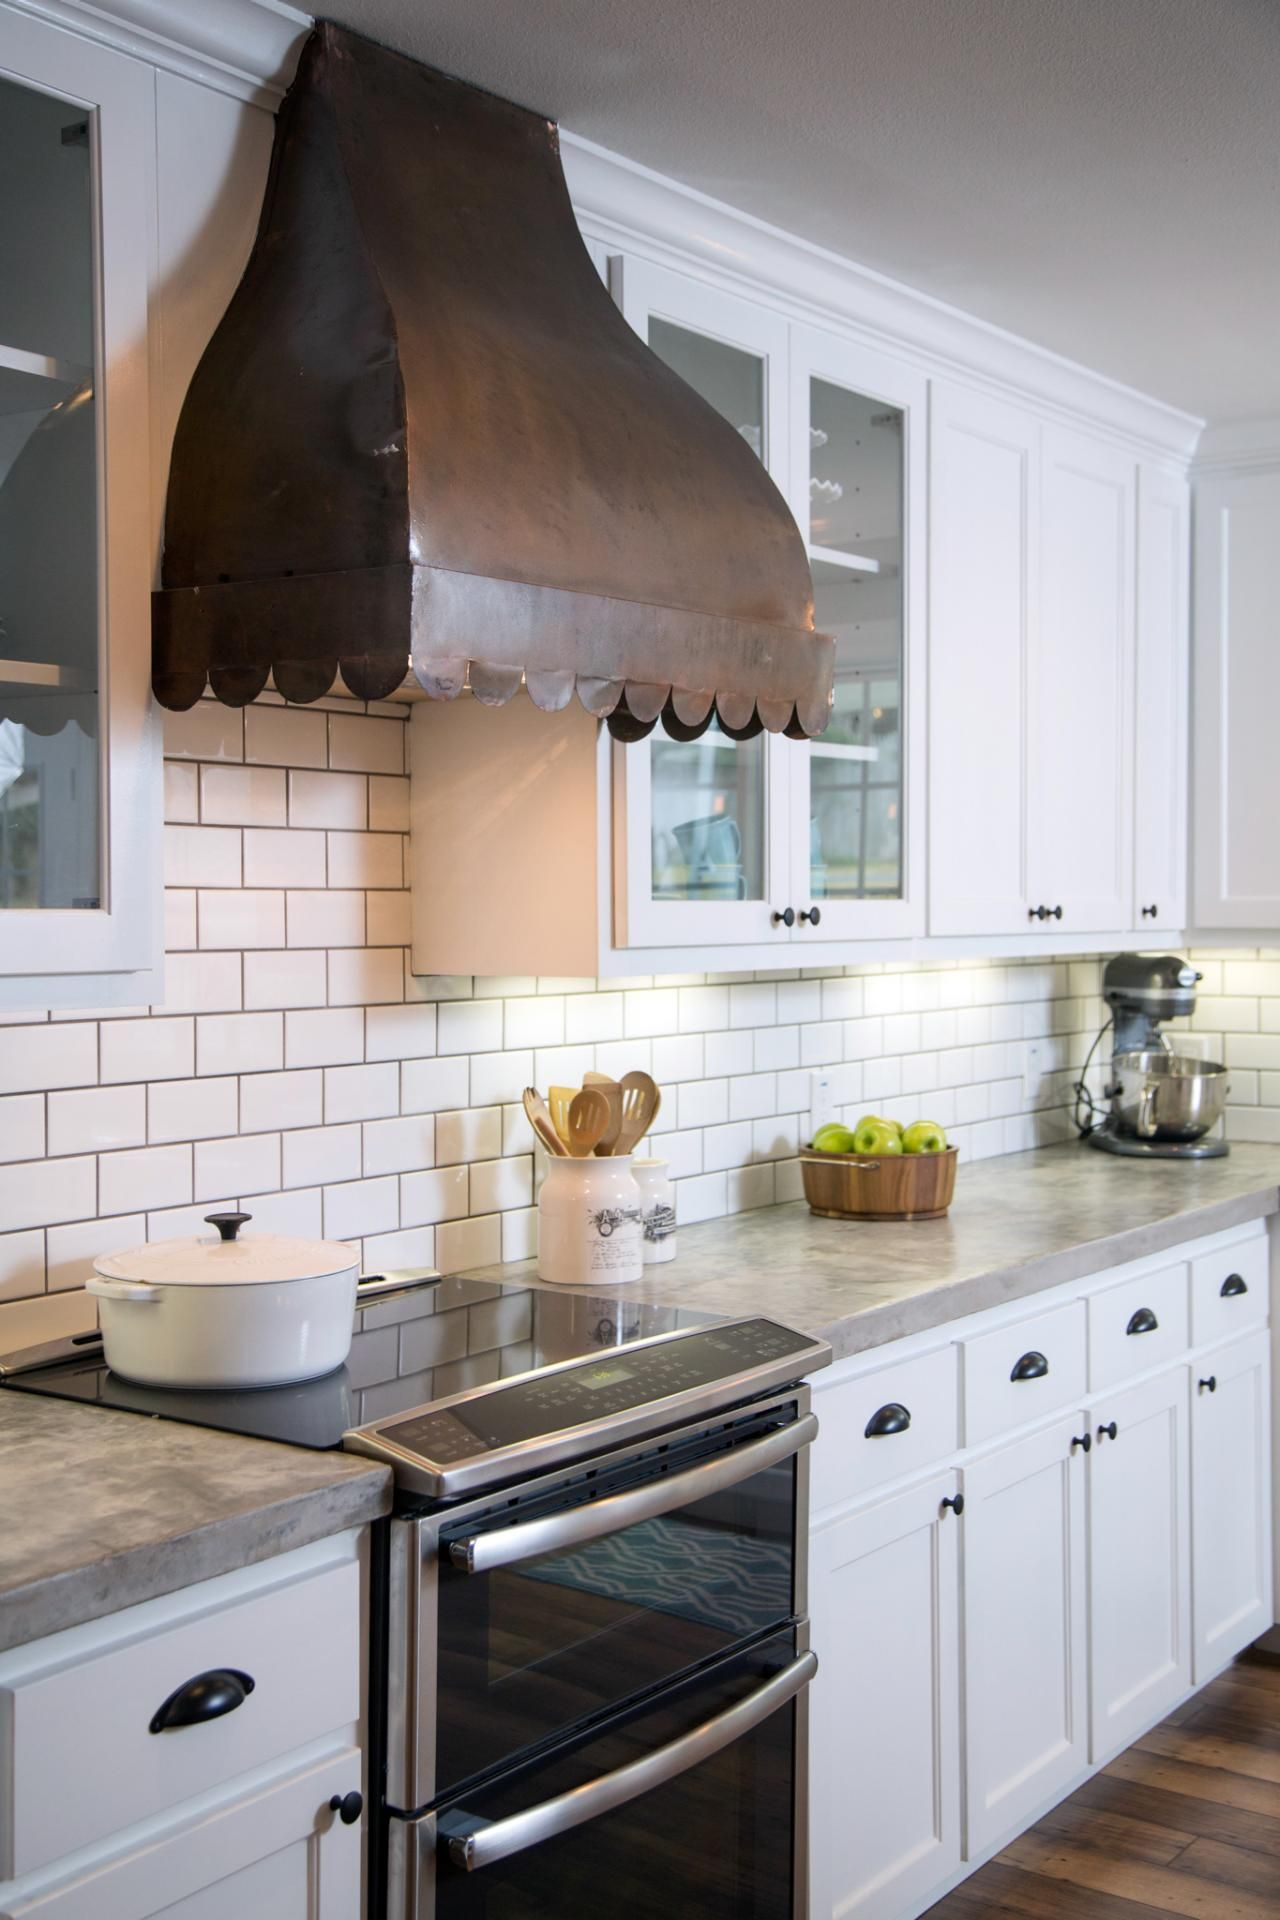 Hgtv fixer upper kitchen appliances - Kitchen Makeover Ideas From Fixer Upper